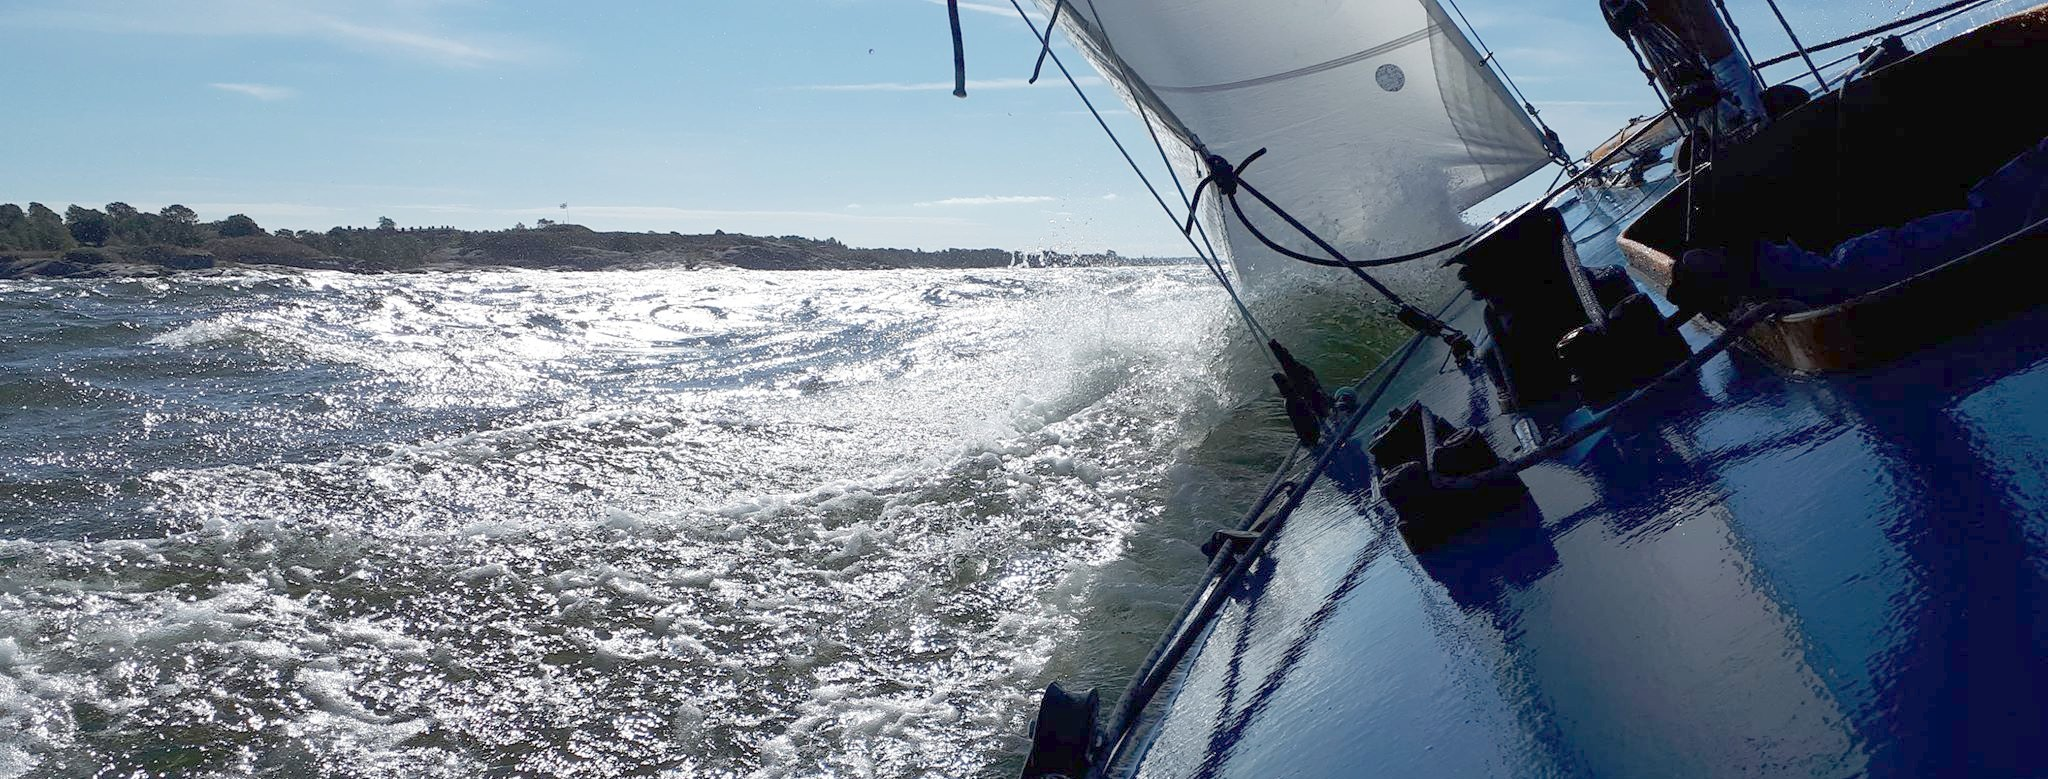 View from deck of sailing boat